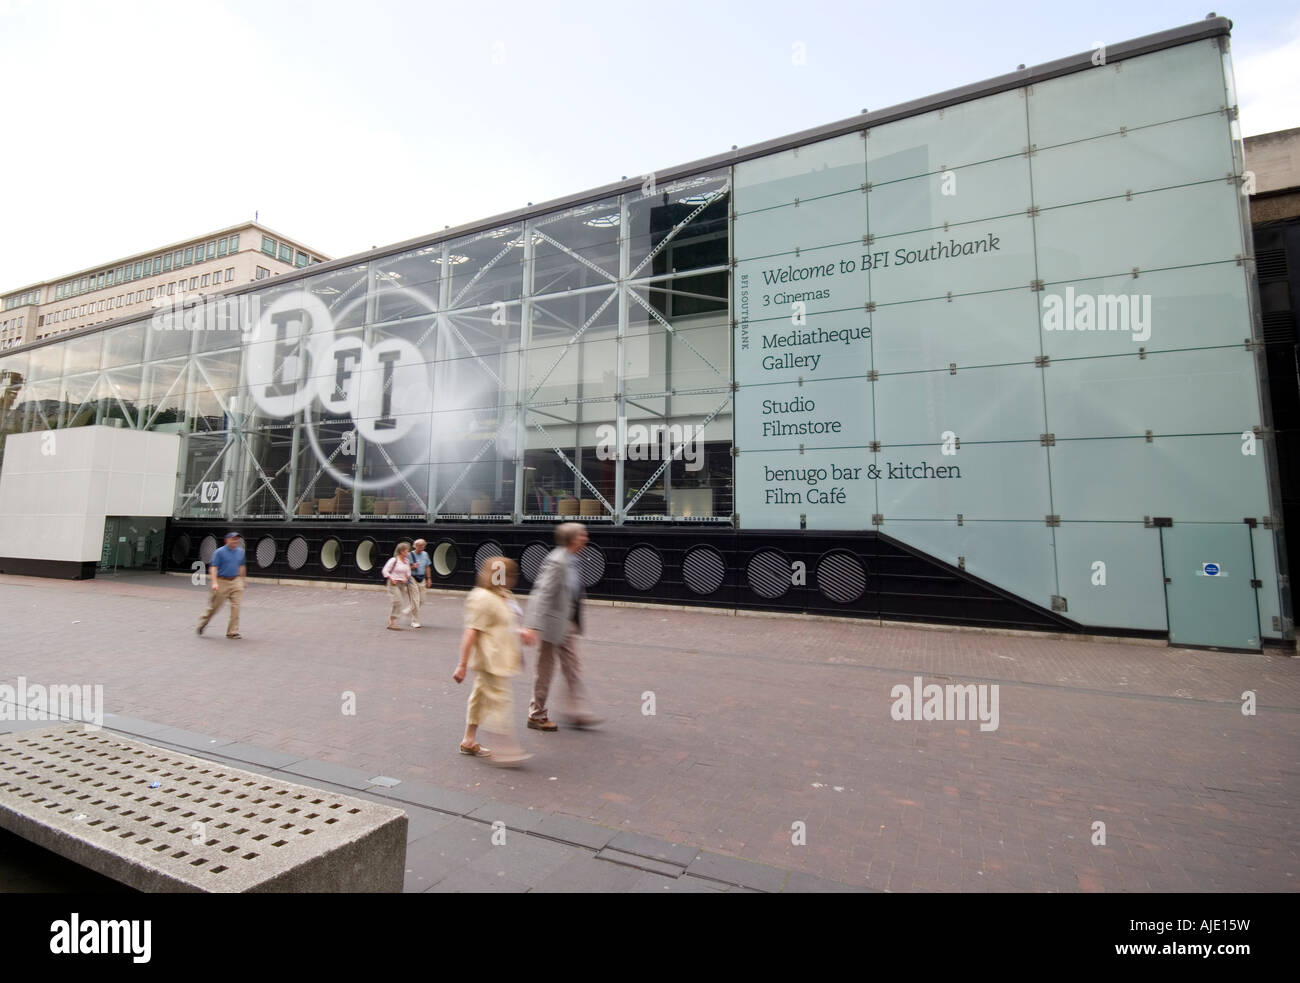 British Film Institute BFI on the London South Bank as new in 2007 - people in motion blur - Stock Image